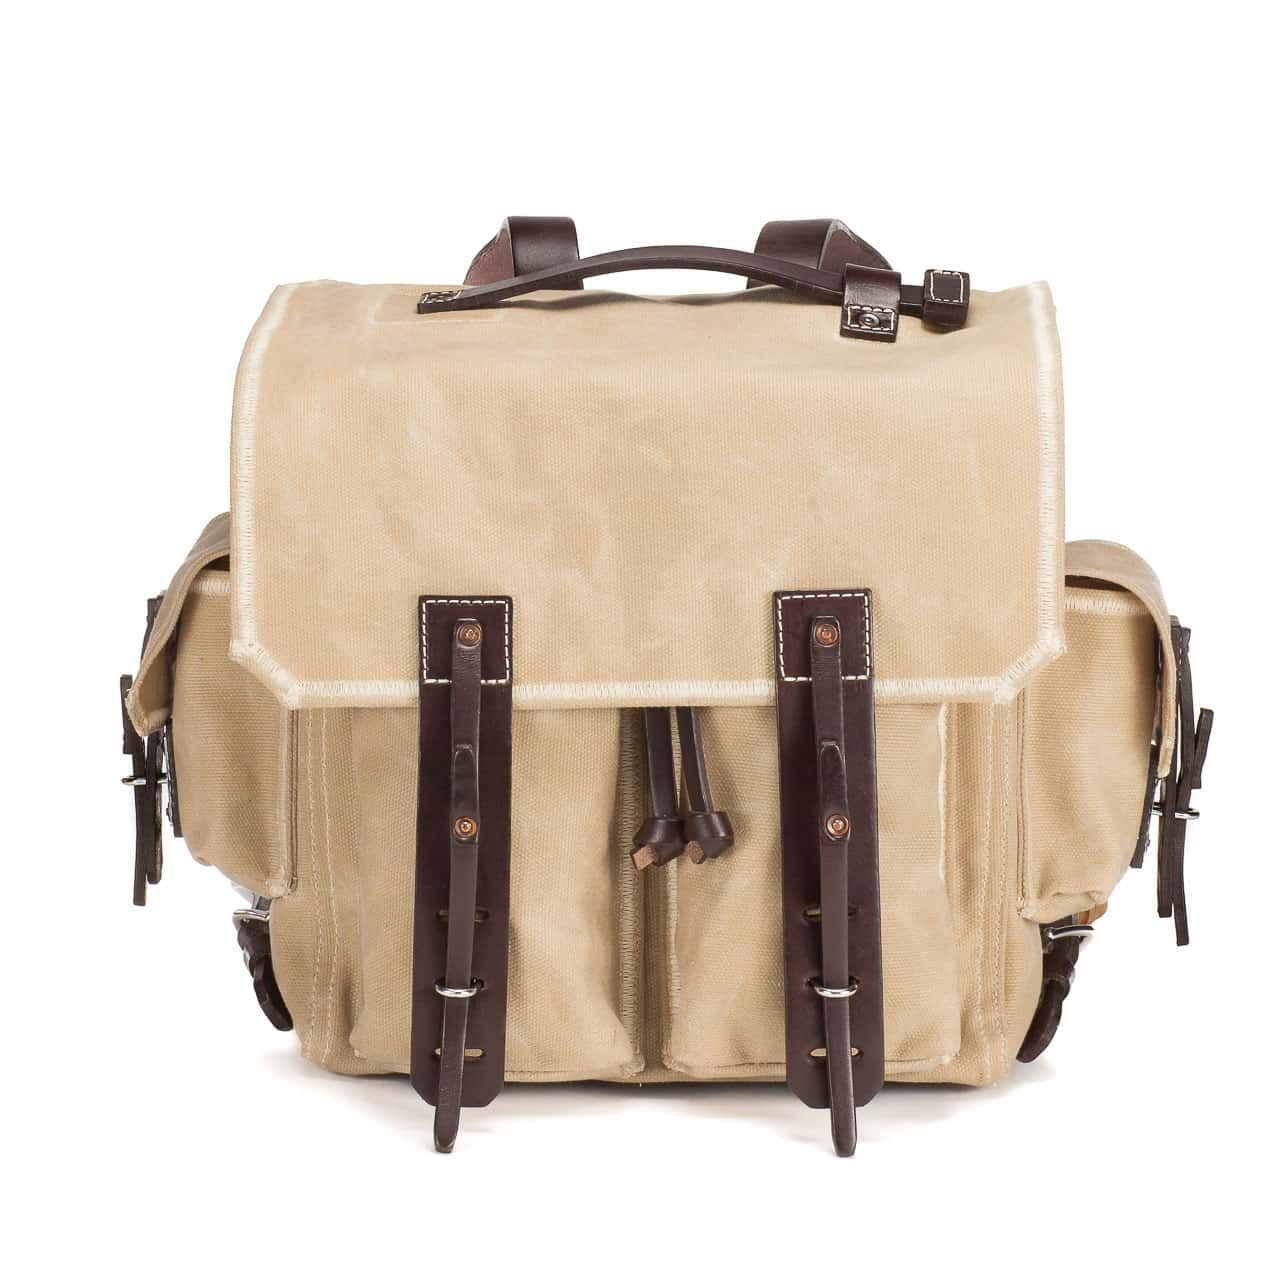 5 Pocket Backpack in Color Sand Front